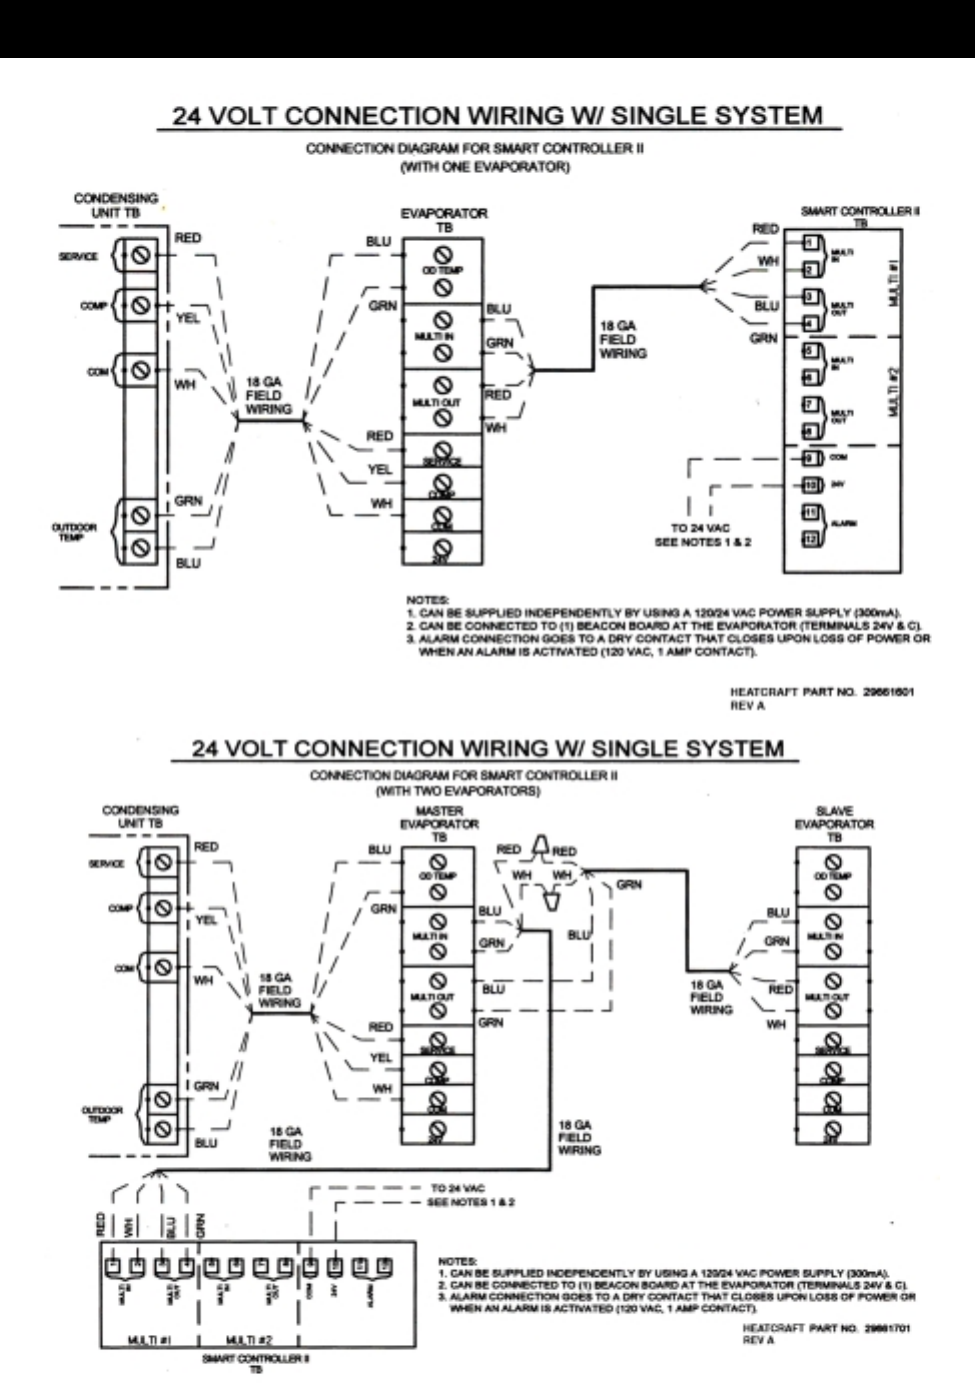 heatcraft evaporator coil wiring diagram heatcraft refrigeration products 25000601 users manual  heatcraft refrigeration products